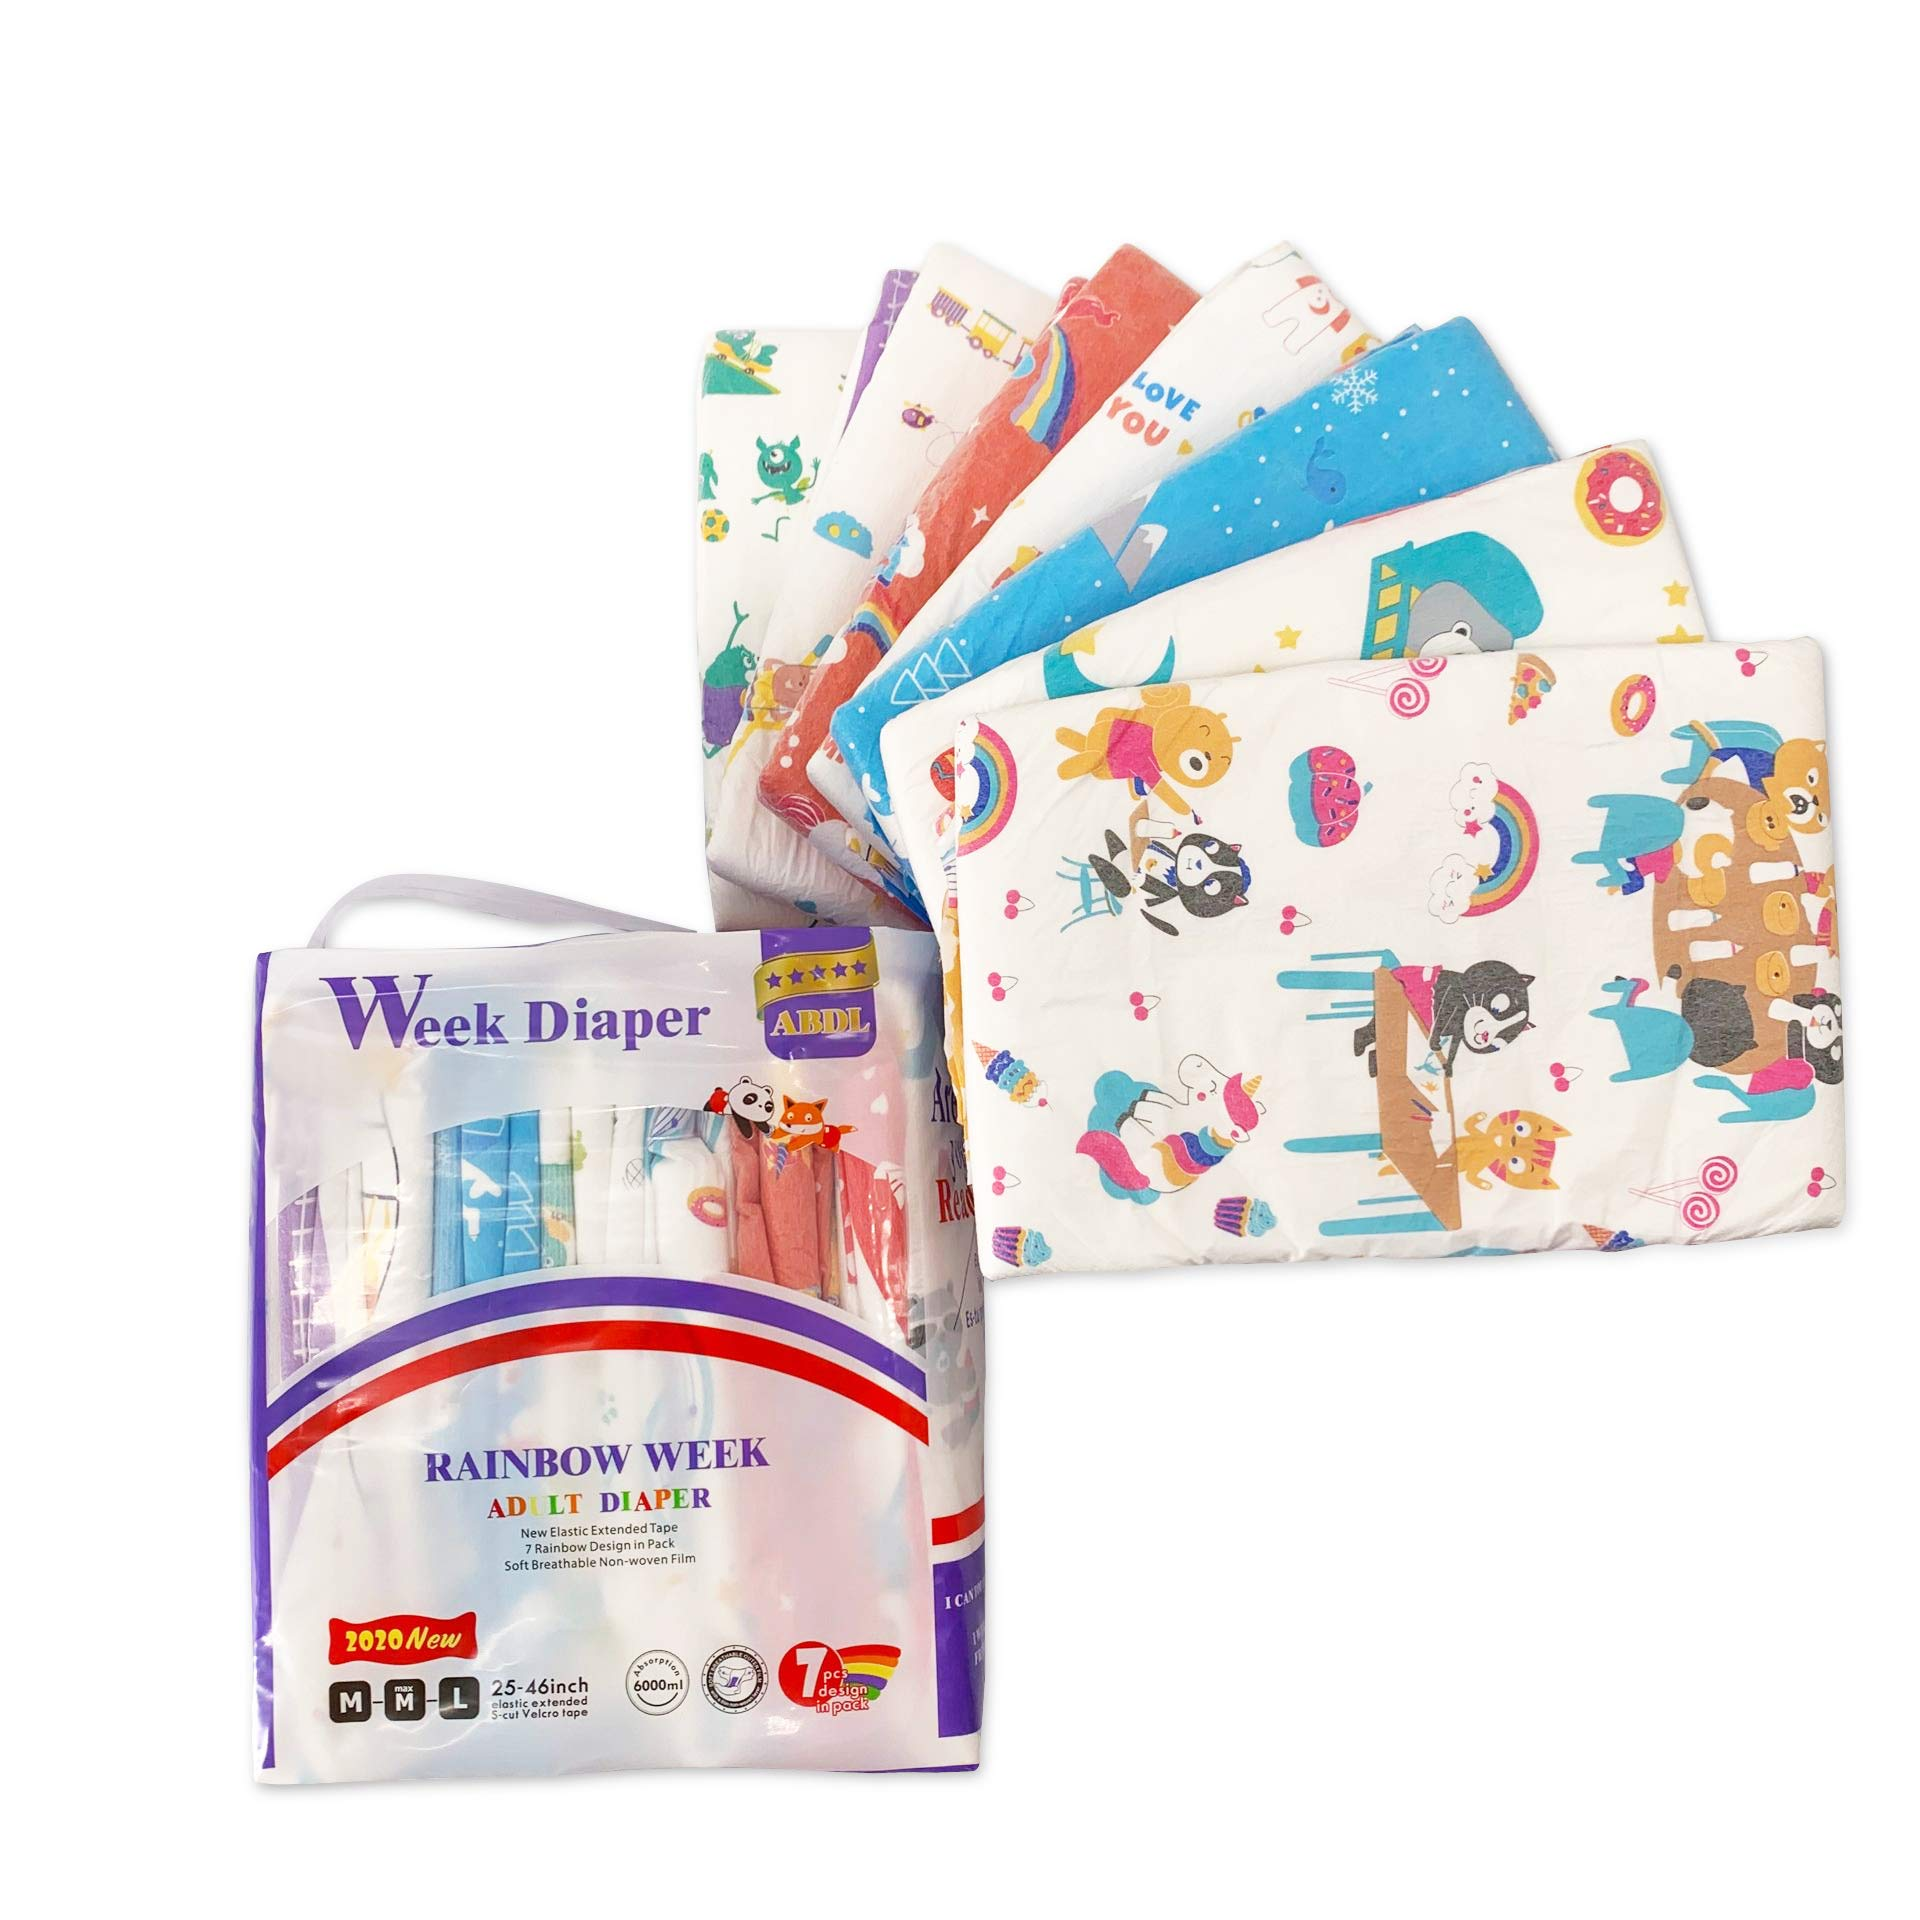 Adult Diaper One time Diaper Adult Baby Diaper Lover ABDL 7 Pieces (Rainbow Week Diaper)